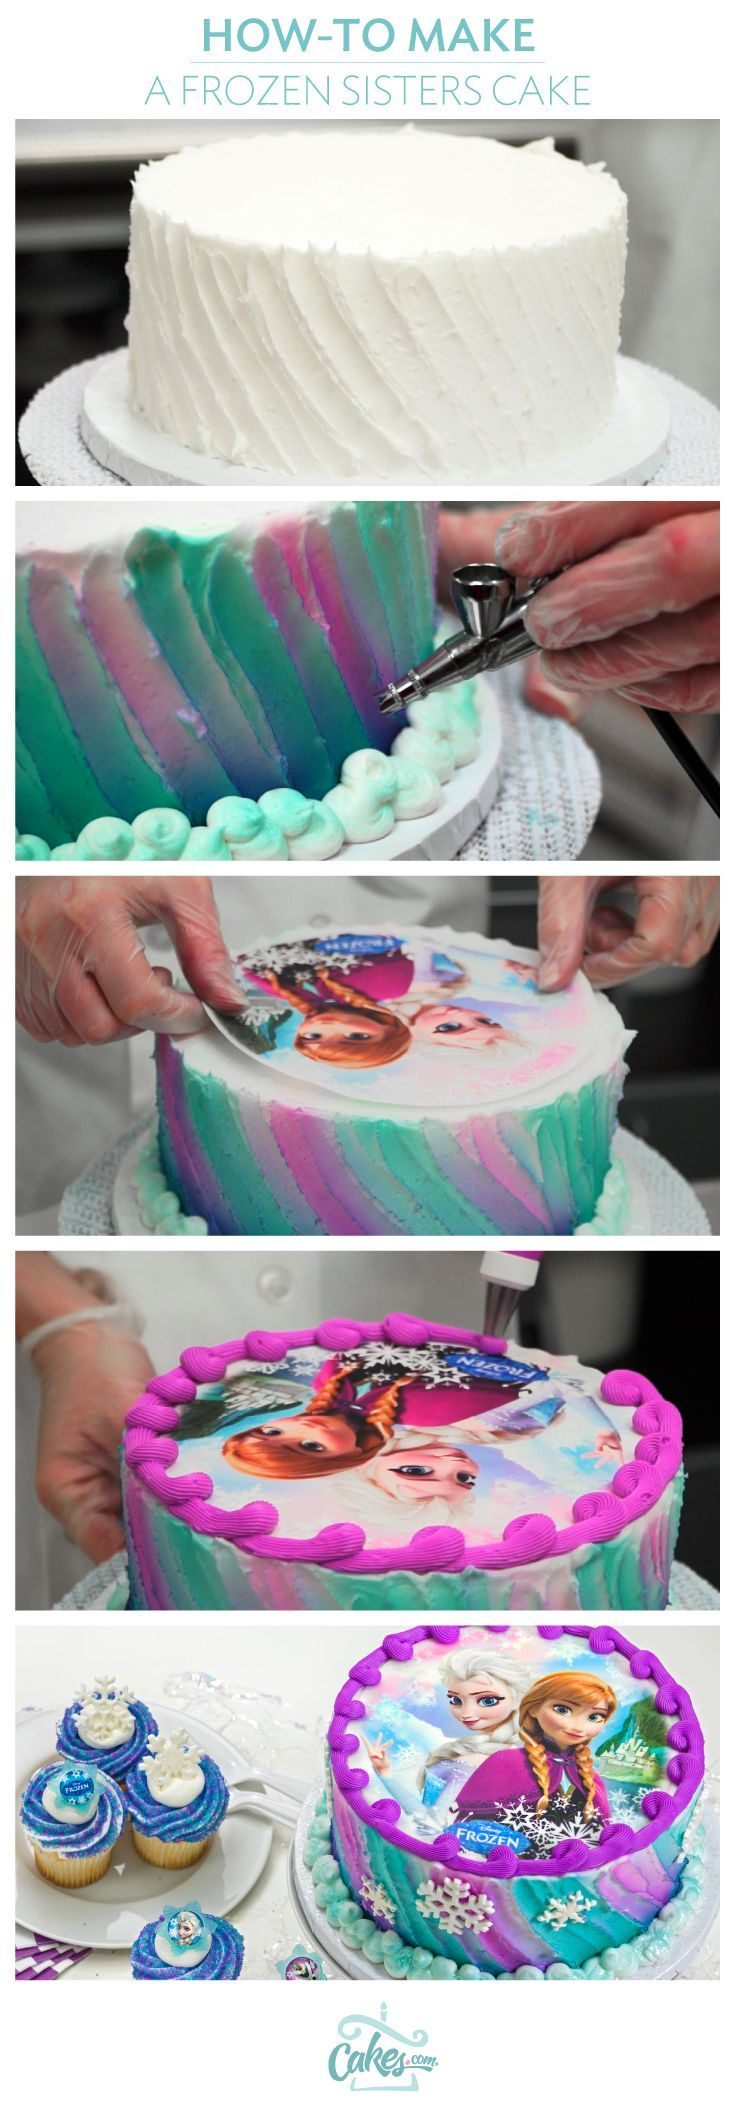 Elsa and Ana Frozen cake DIY